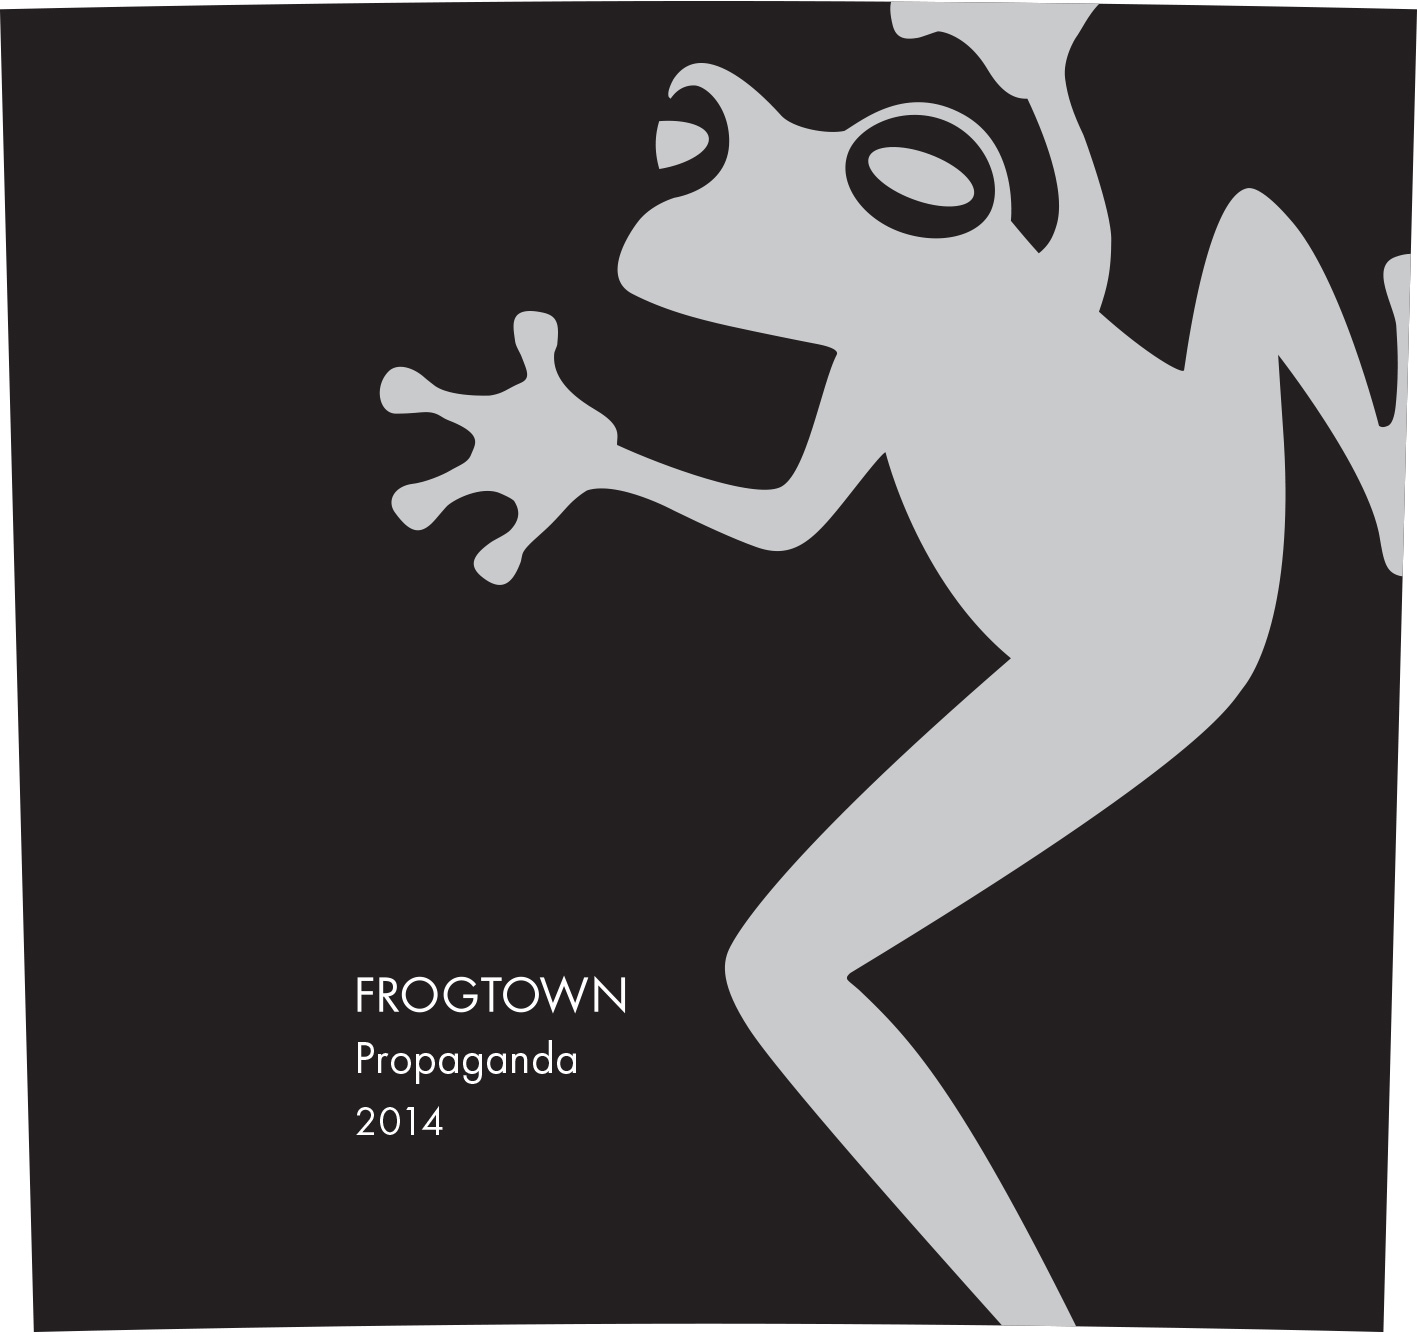 <b>Frogtown</b></br>Propaganda</br> 2014 MAIN